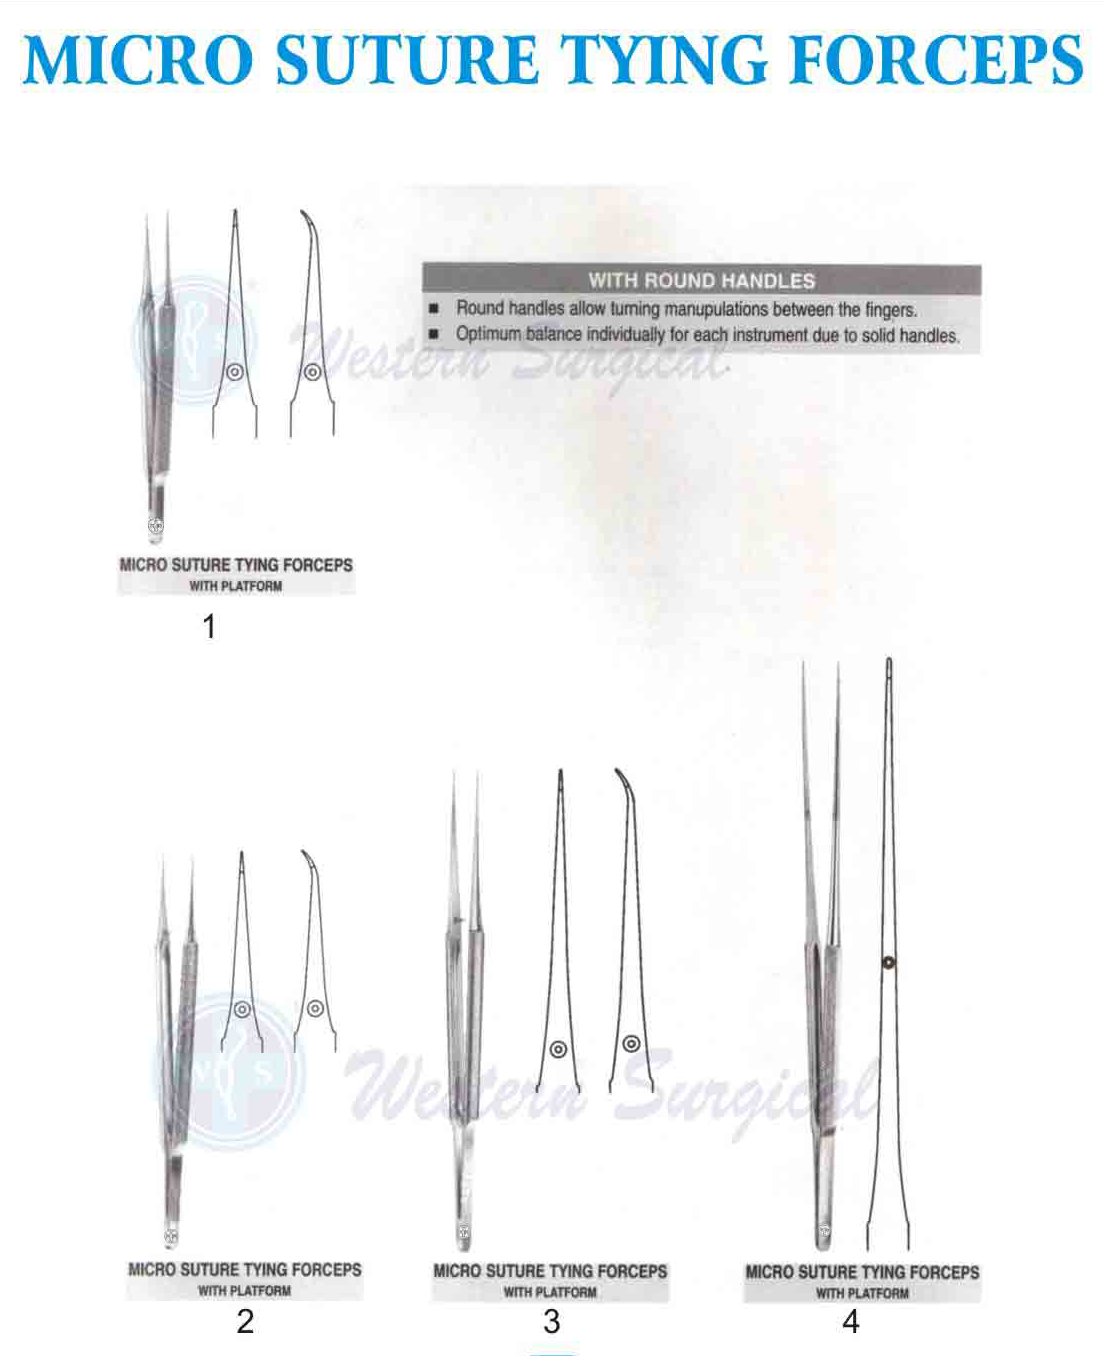 Micro suture tying forceps